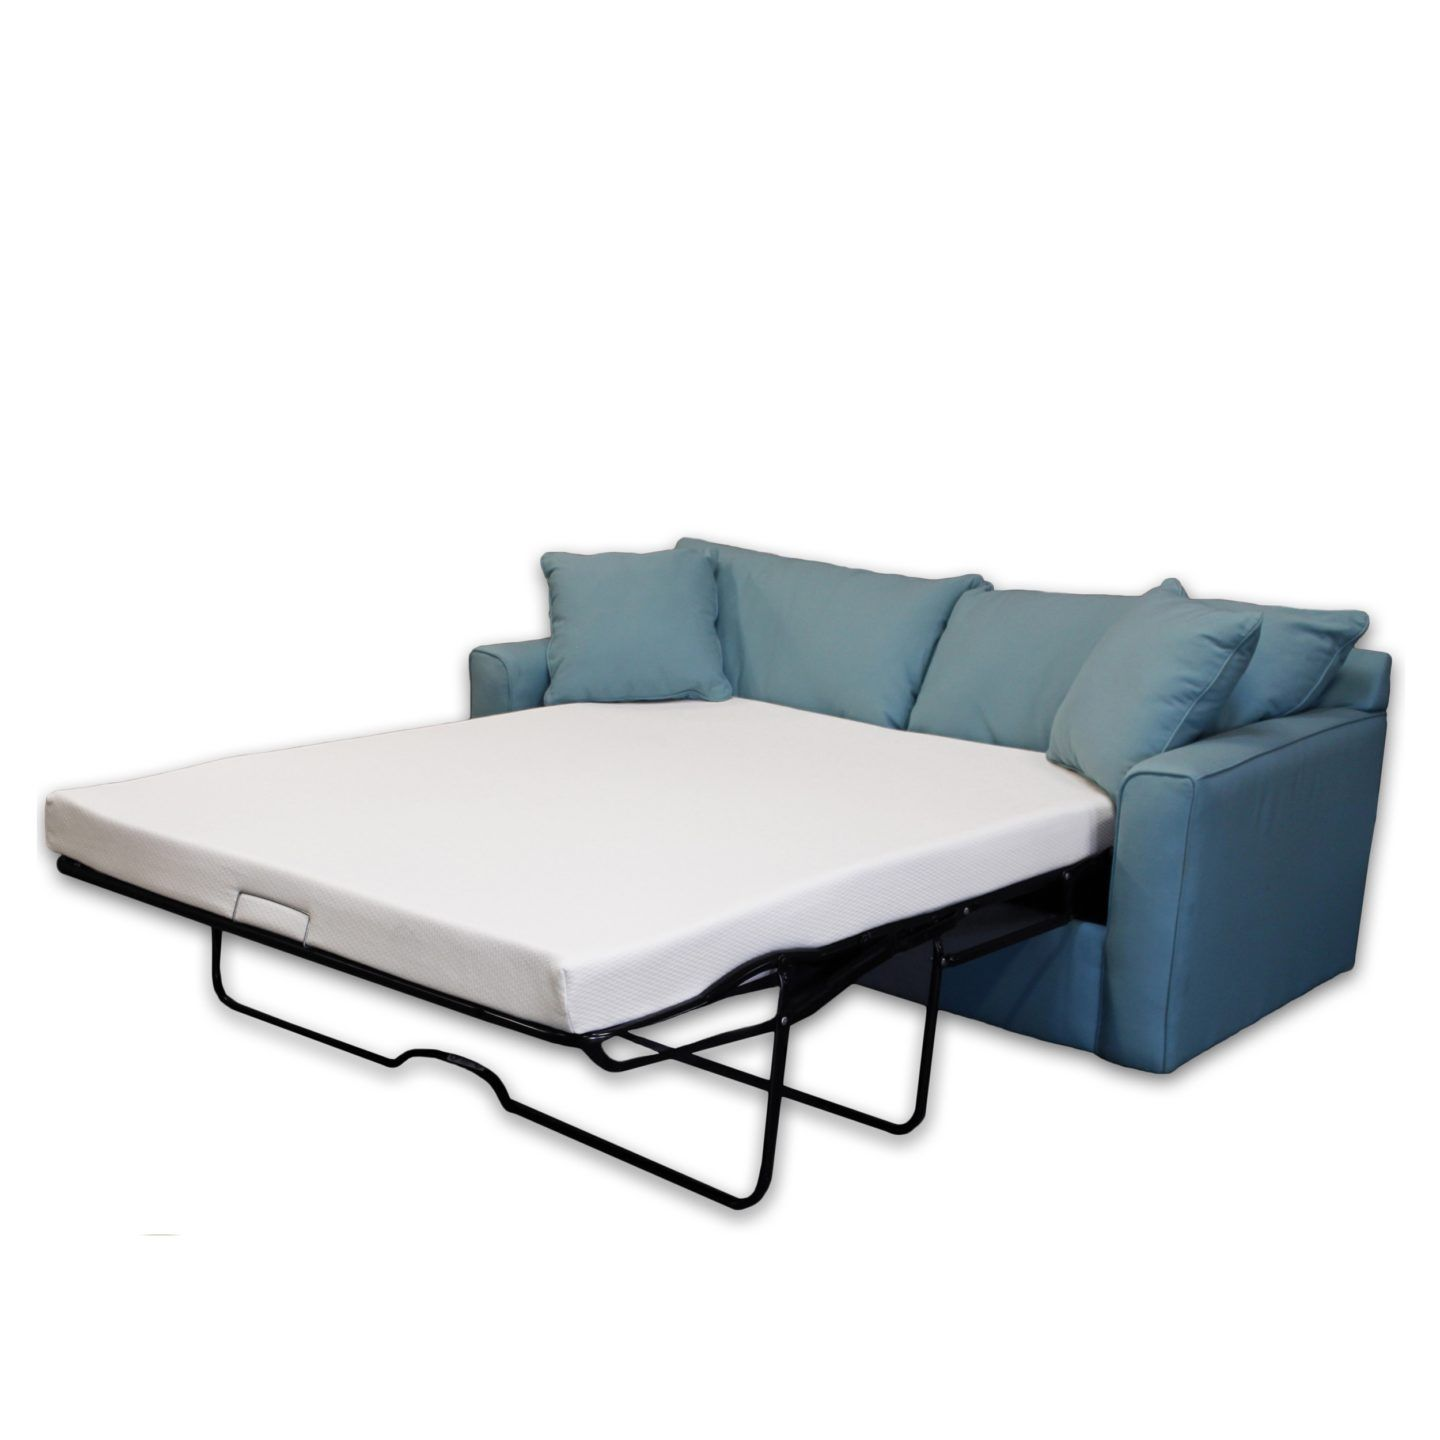 Sensational How To Make A Pull Out Sofa Bed More Comfortable Sofa Bed Spiritservingveterans Wood Chair Design Ideas Spiritservingveteransorg